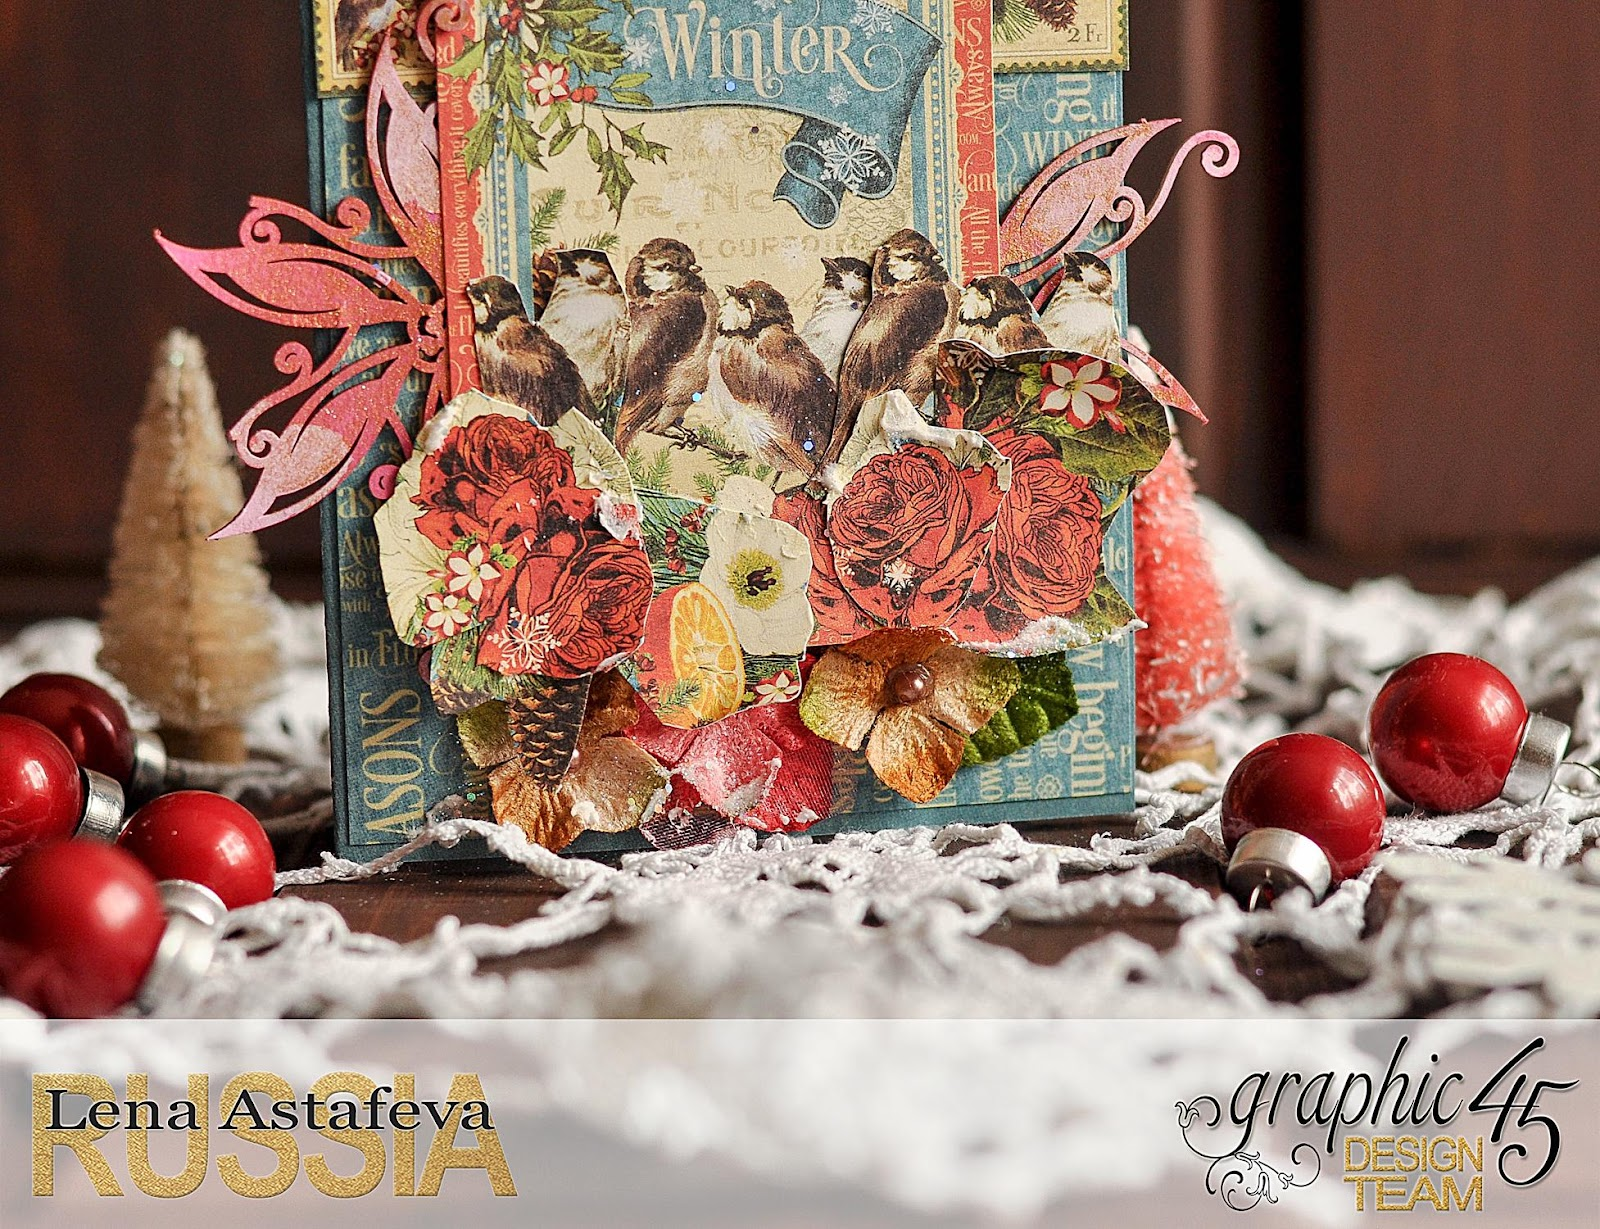 Cards-Seasons-Graphic 45-by Lena Astafeva-31.jpg